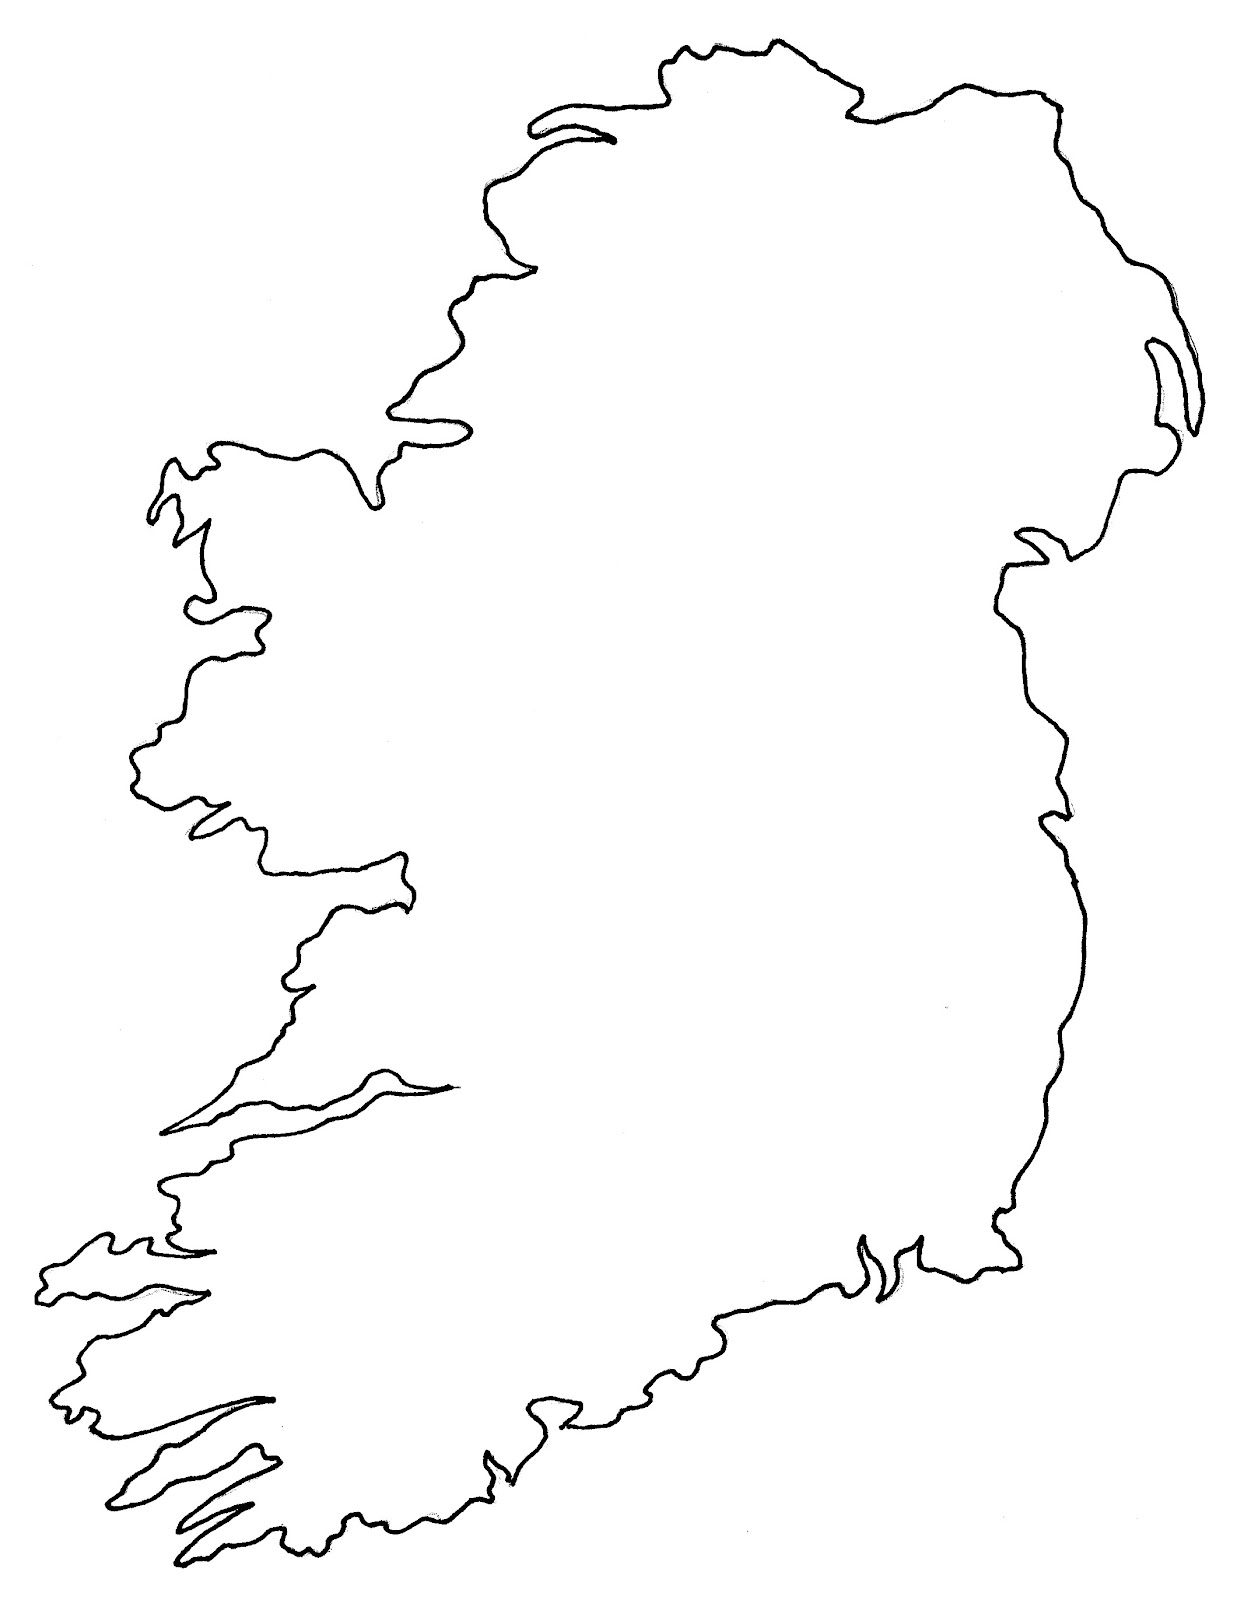 blank map northern ireland